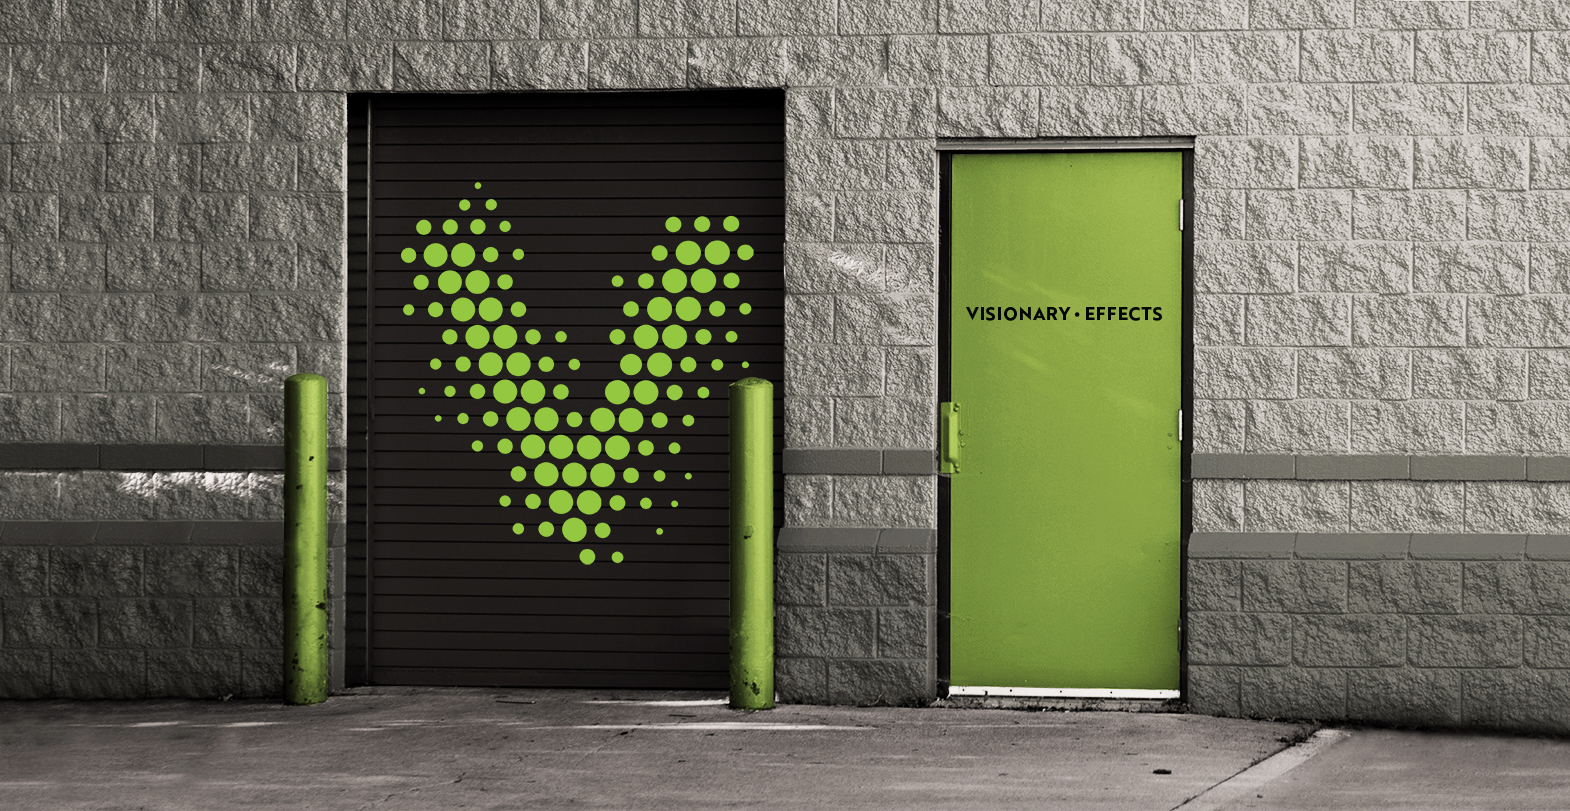 Design-and-Architecture_Branding_Visionary-Effects_Bootstrap-Design-Co_Environmental.jpg